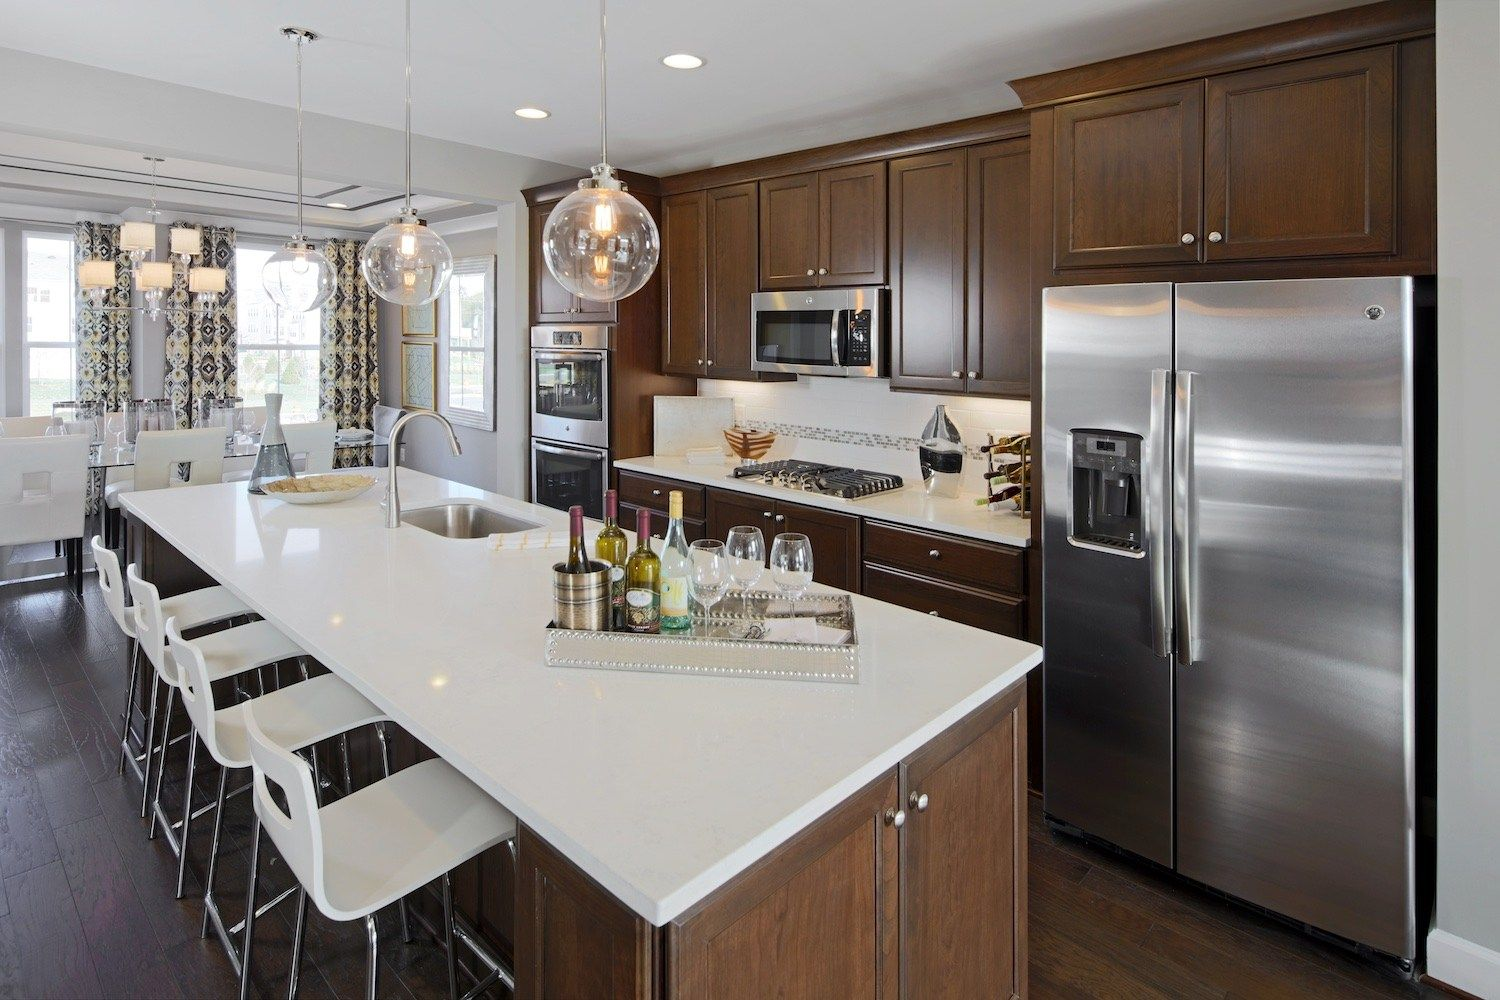 Hillwood SOLD OUT Open floor plan kitchen, Brown